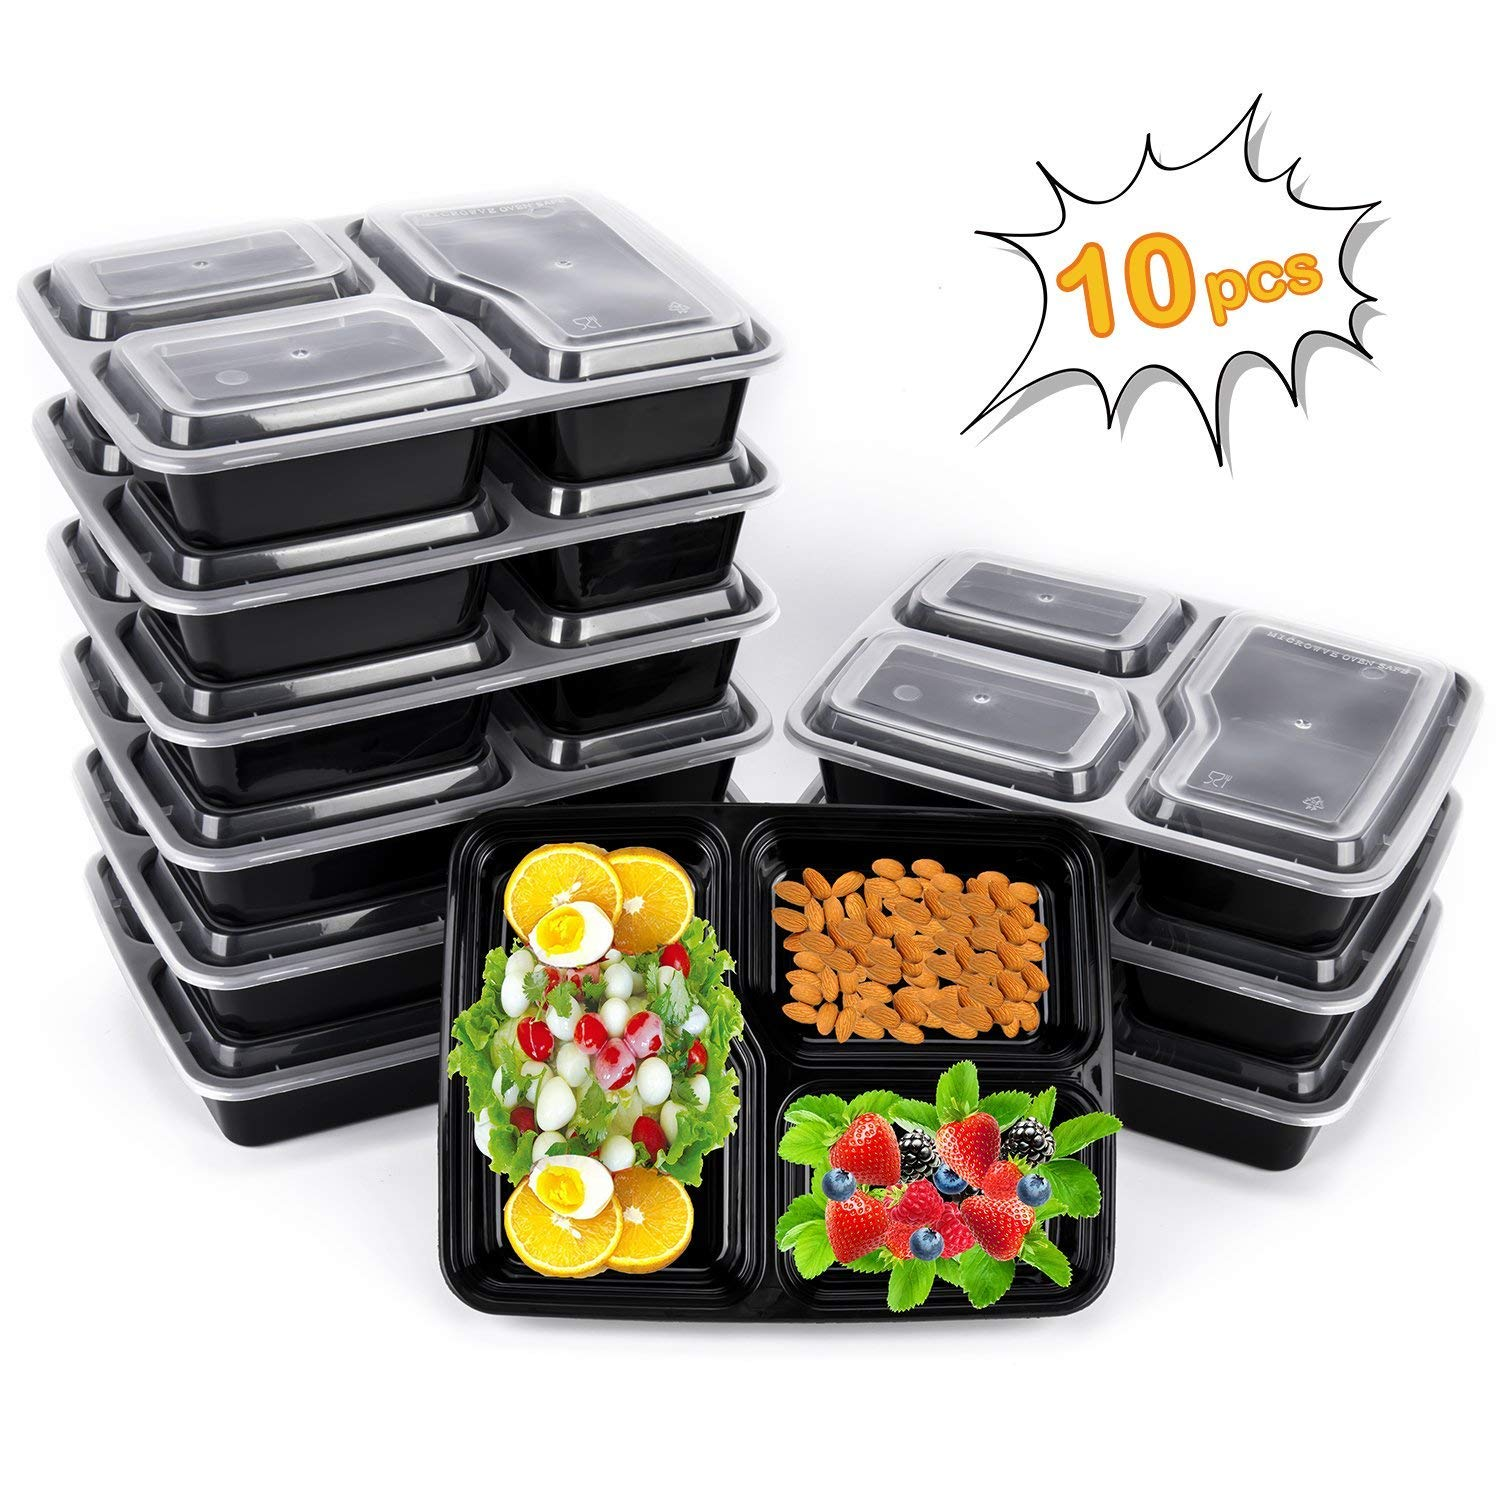 Meal Prep Containers, 10 Pack Premium Quality Meal Prep Plastic Microwavable Food Containers for adults (BPA free Food Grade/Freezer/Dishwasher Safe) (advanced) (Upgraded) DAPRIL